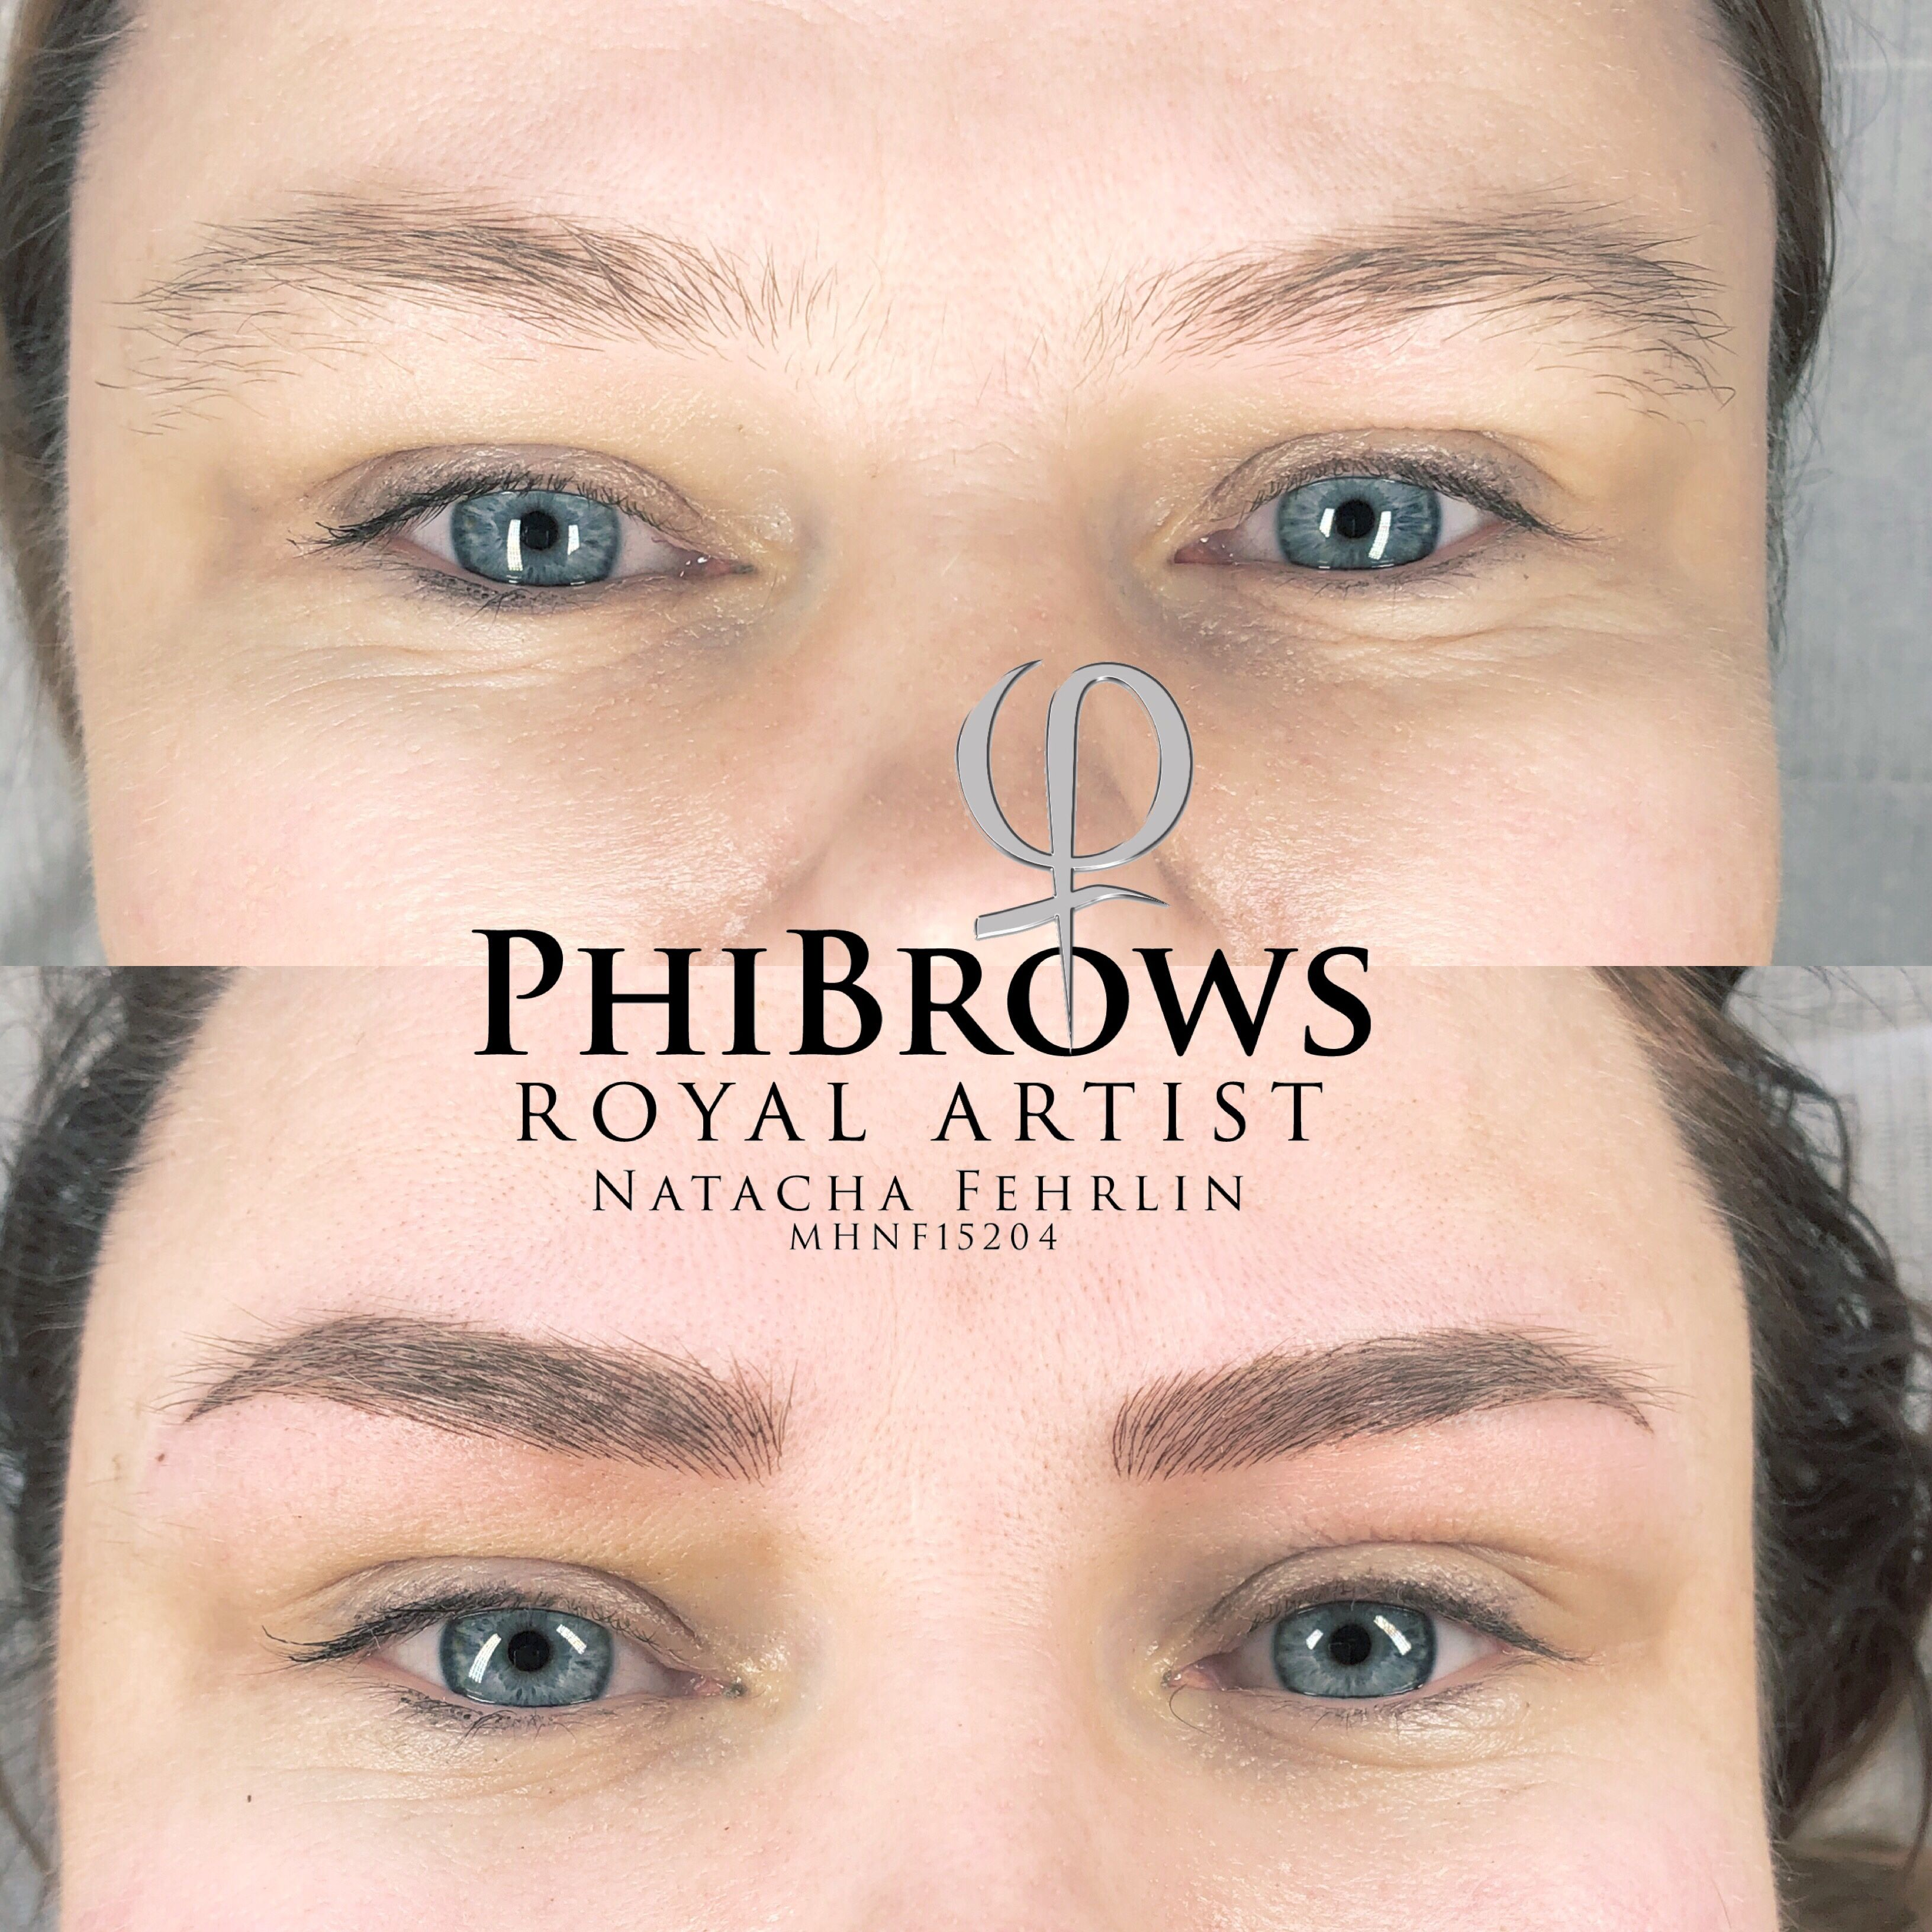 Pin von My Style Beauty auf Microblading Phibrows and